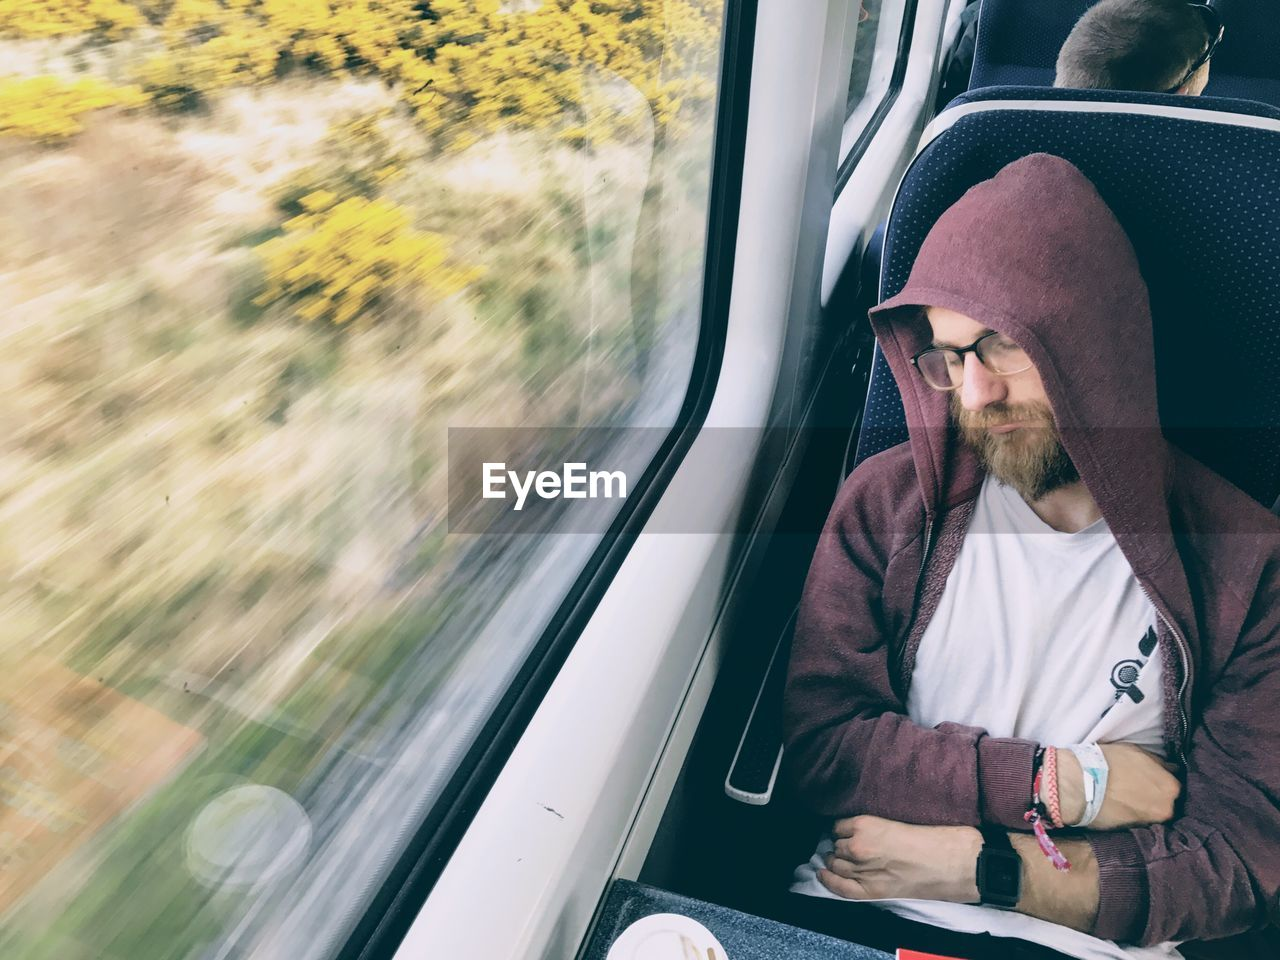 High Angle View Of Man Sleeping While Traveling In Train